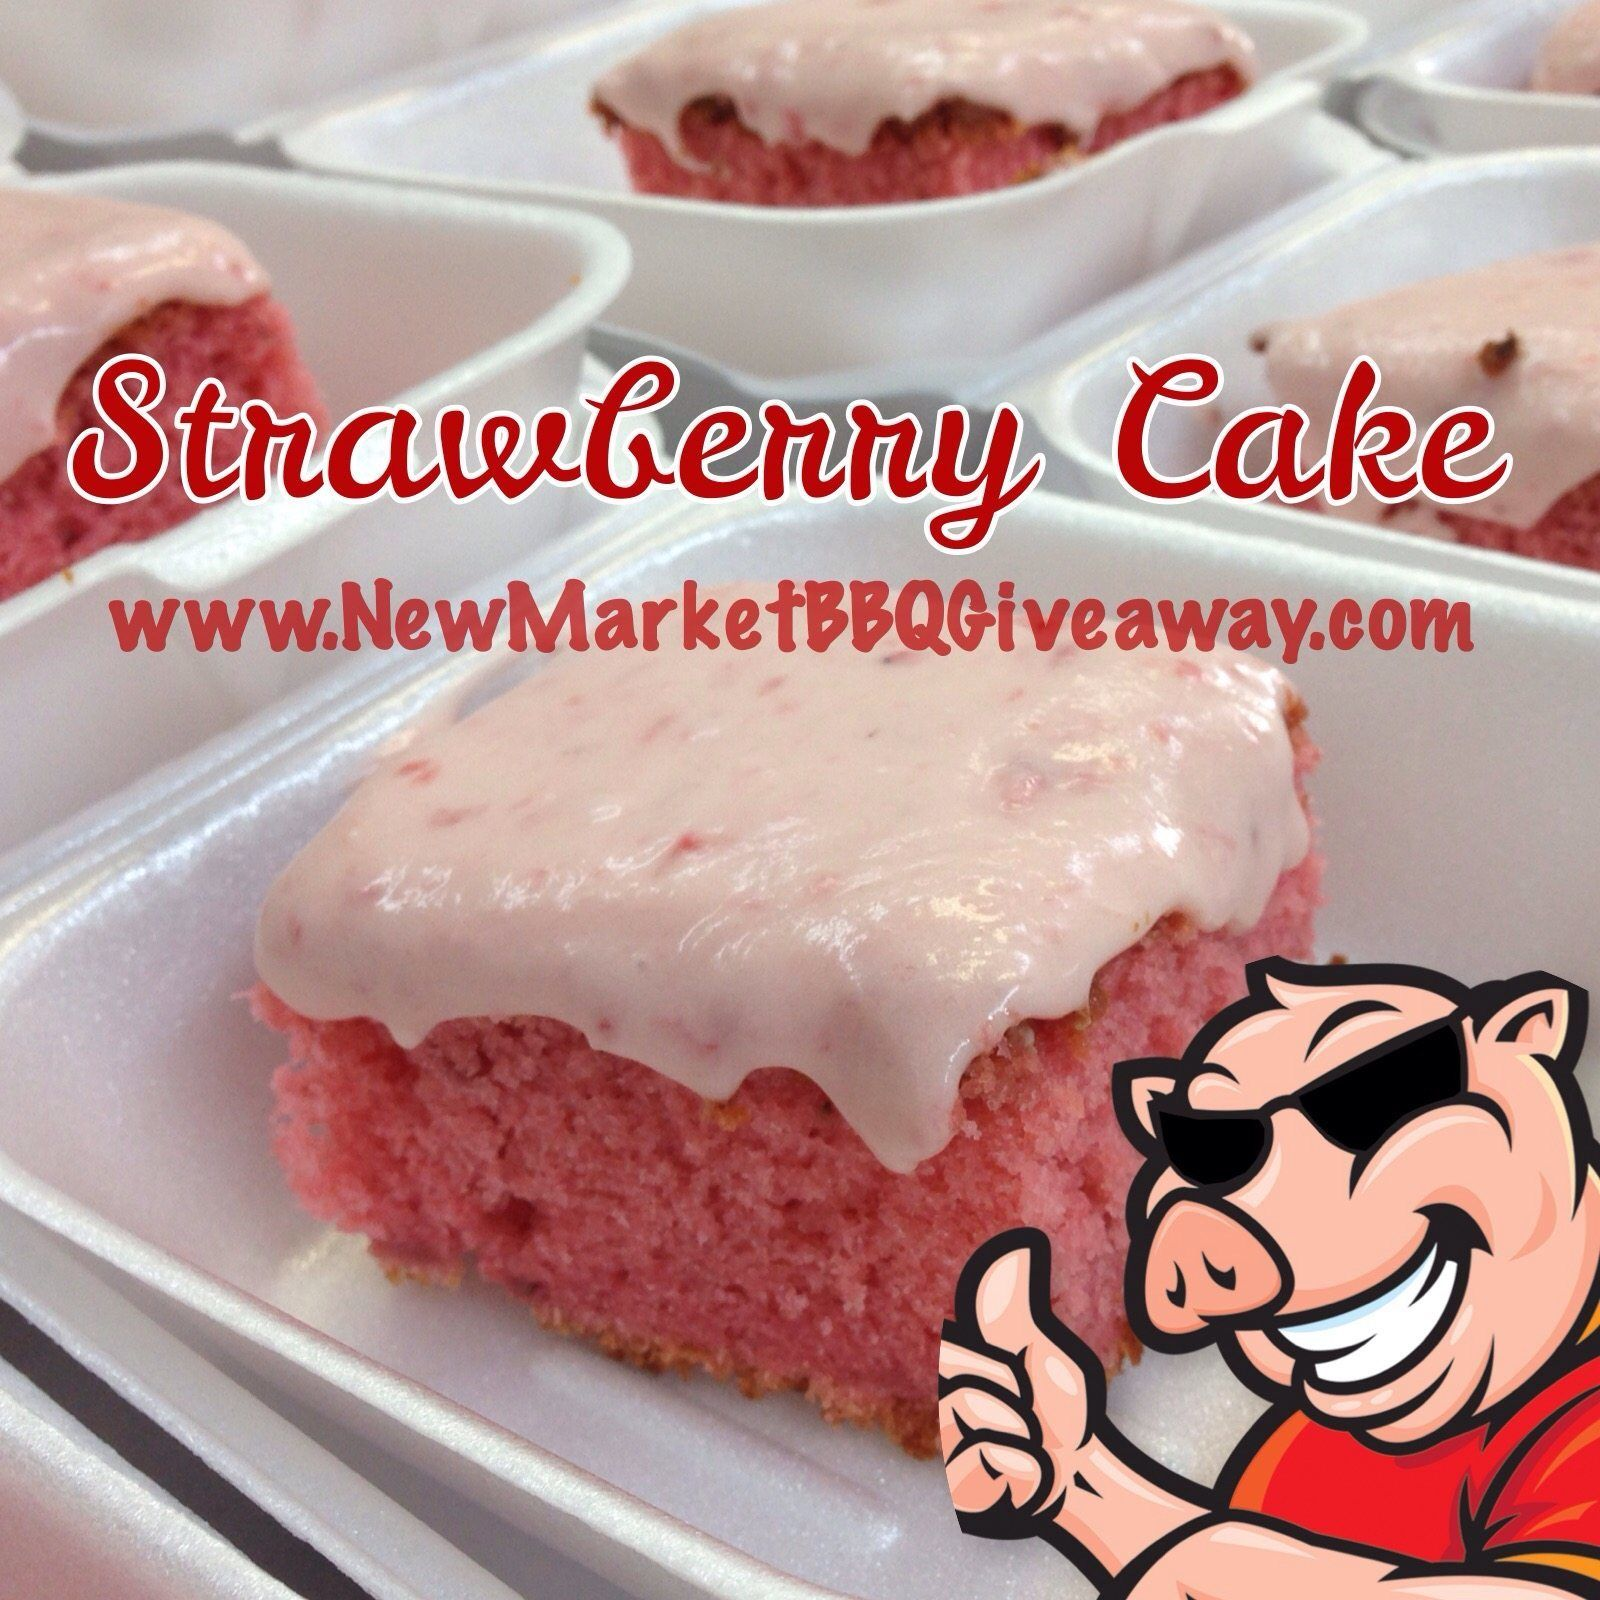 Strawberry Cake by New Market BBQ